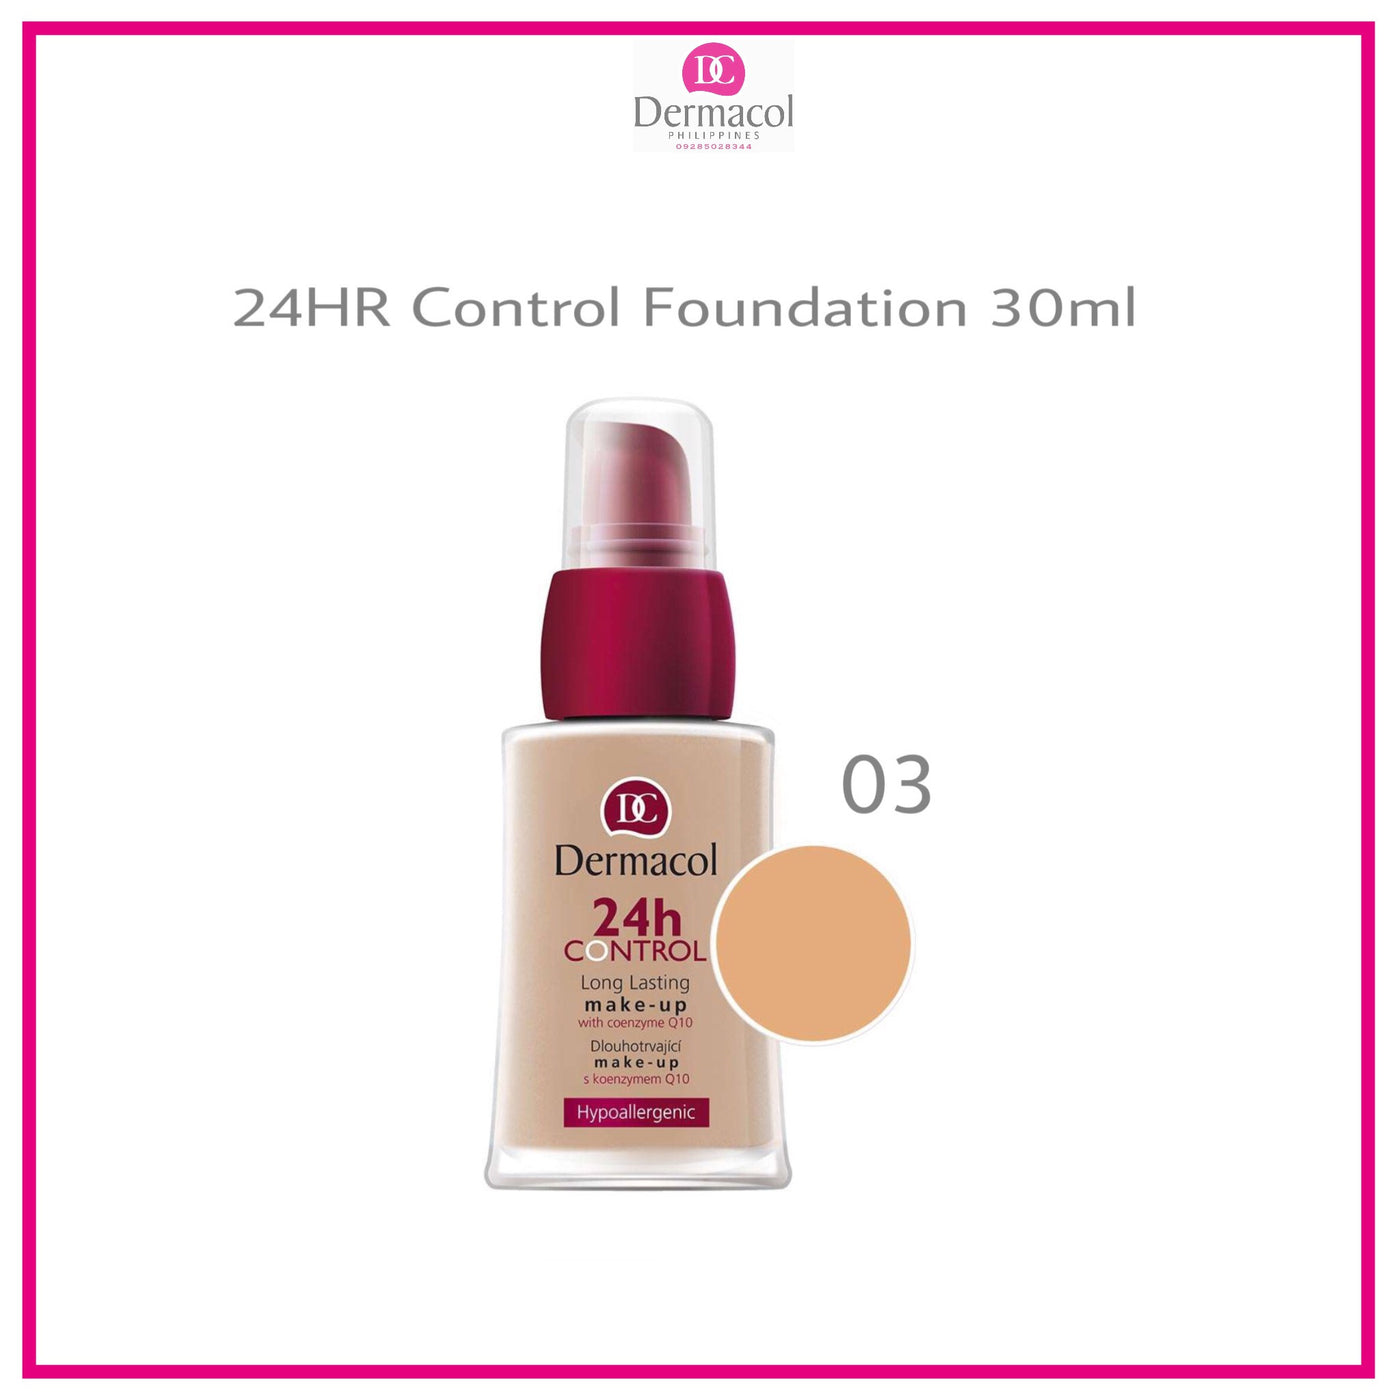 a0743fb62 24H Control Make-Up - No. 03 – Dermacol Philippines